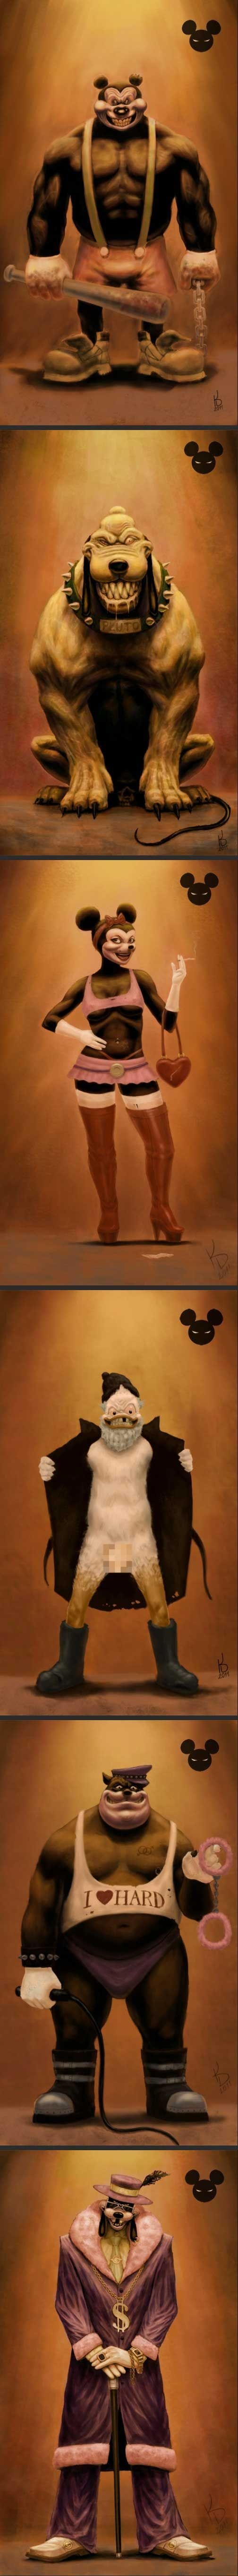 If Disney characters were bad - Walt would be turning in his grave if he saw this